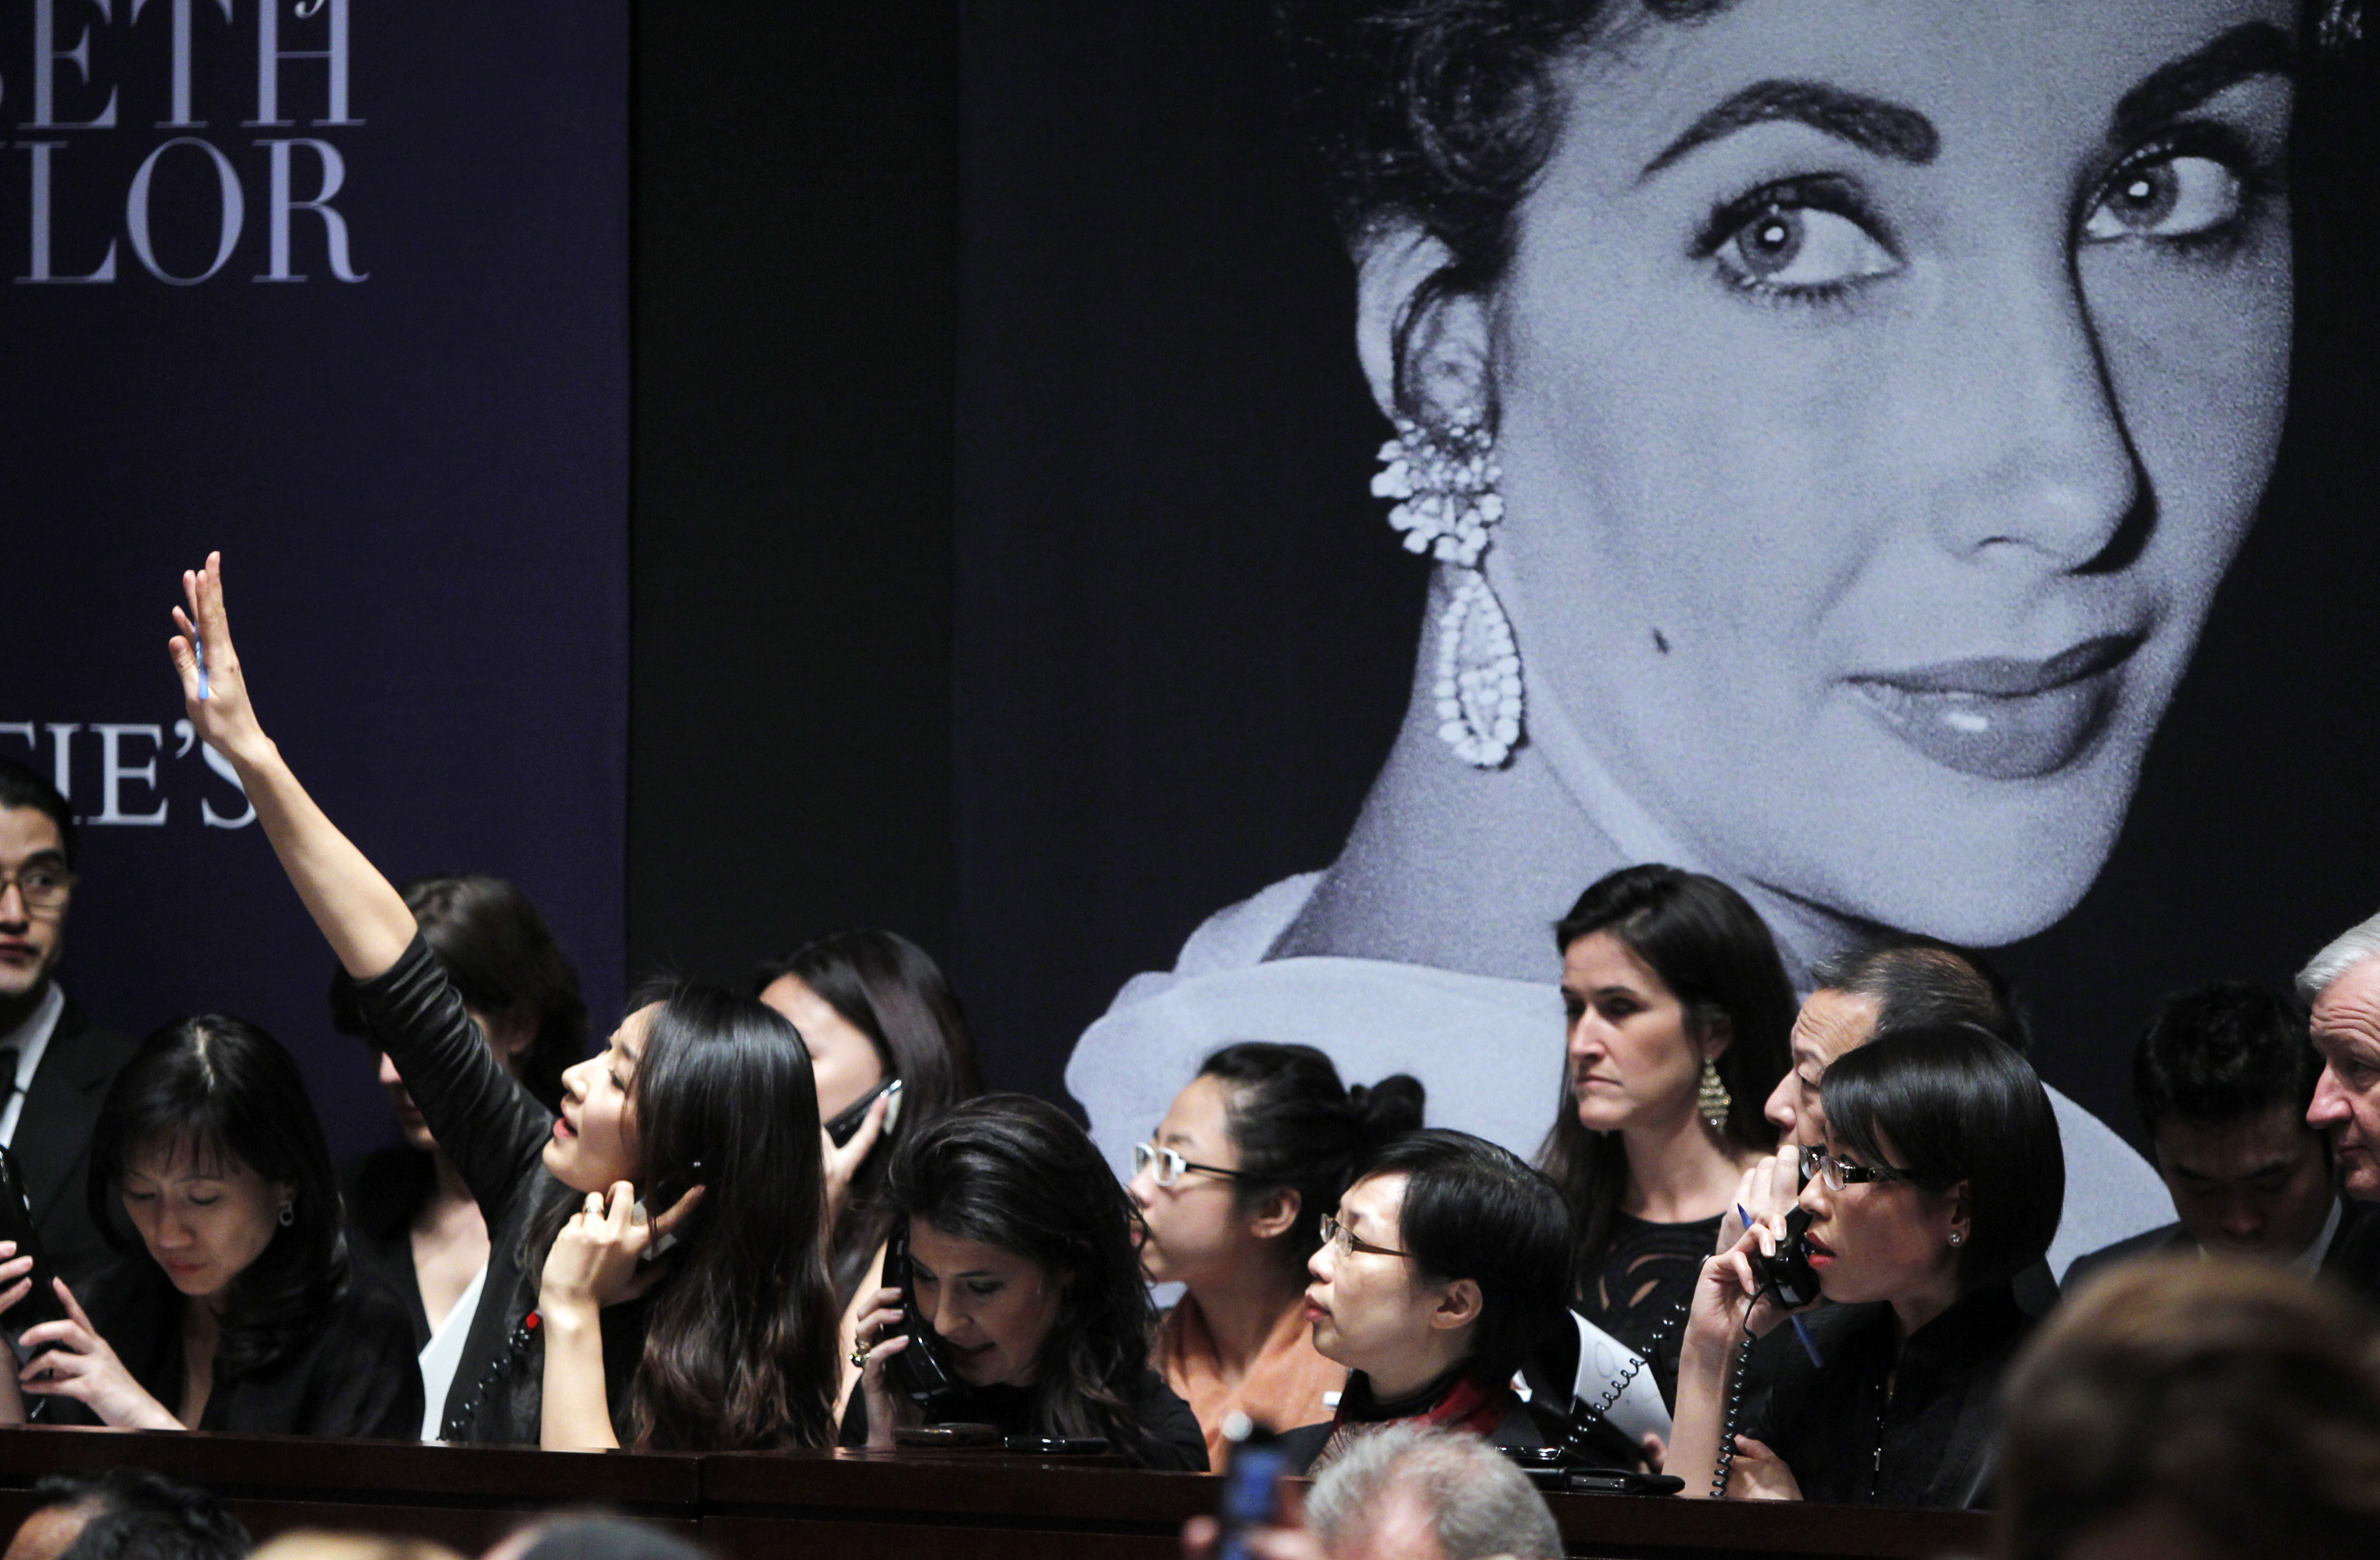 FILE PHOTO: A phone bidder signals her bid near an image of Elizabeth Taylor during an auction of the late actress' jewellery, clothing, art and memorabilia at Christie's Auction house in New York December 13, 2011. REUTERS/Carlo Allegri